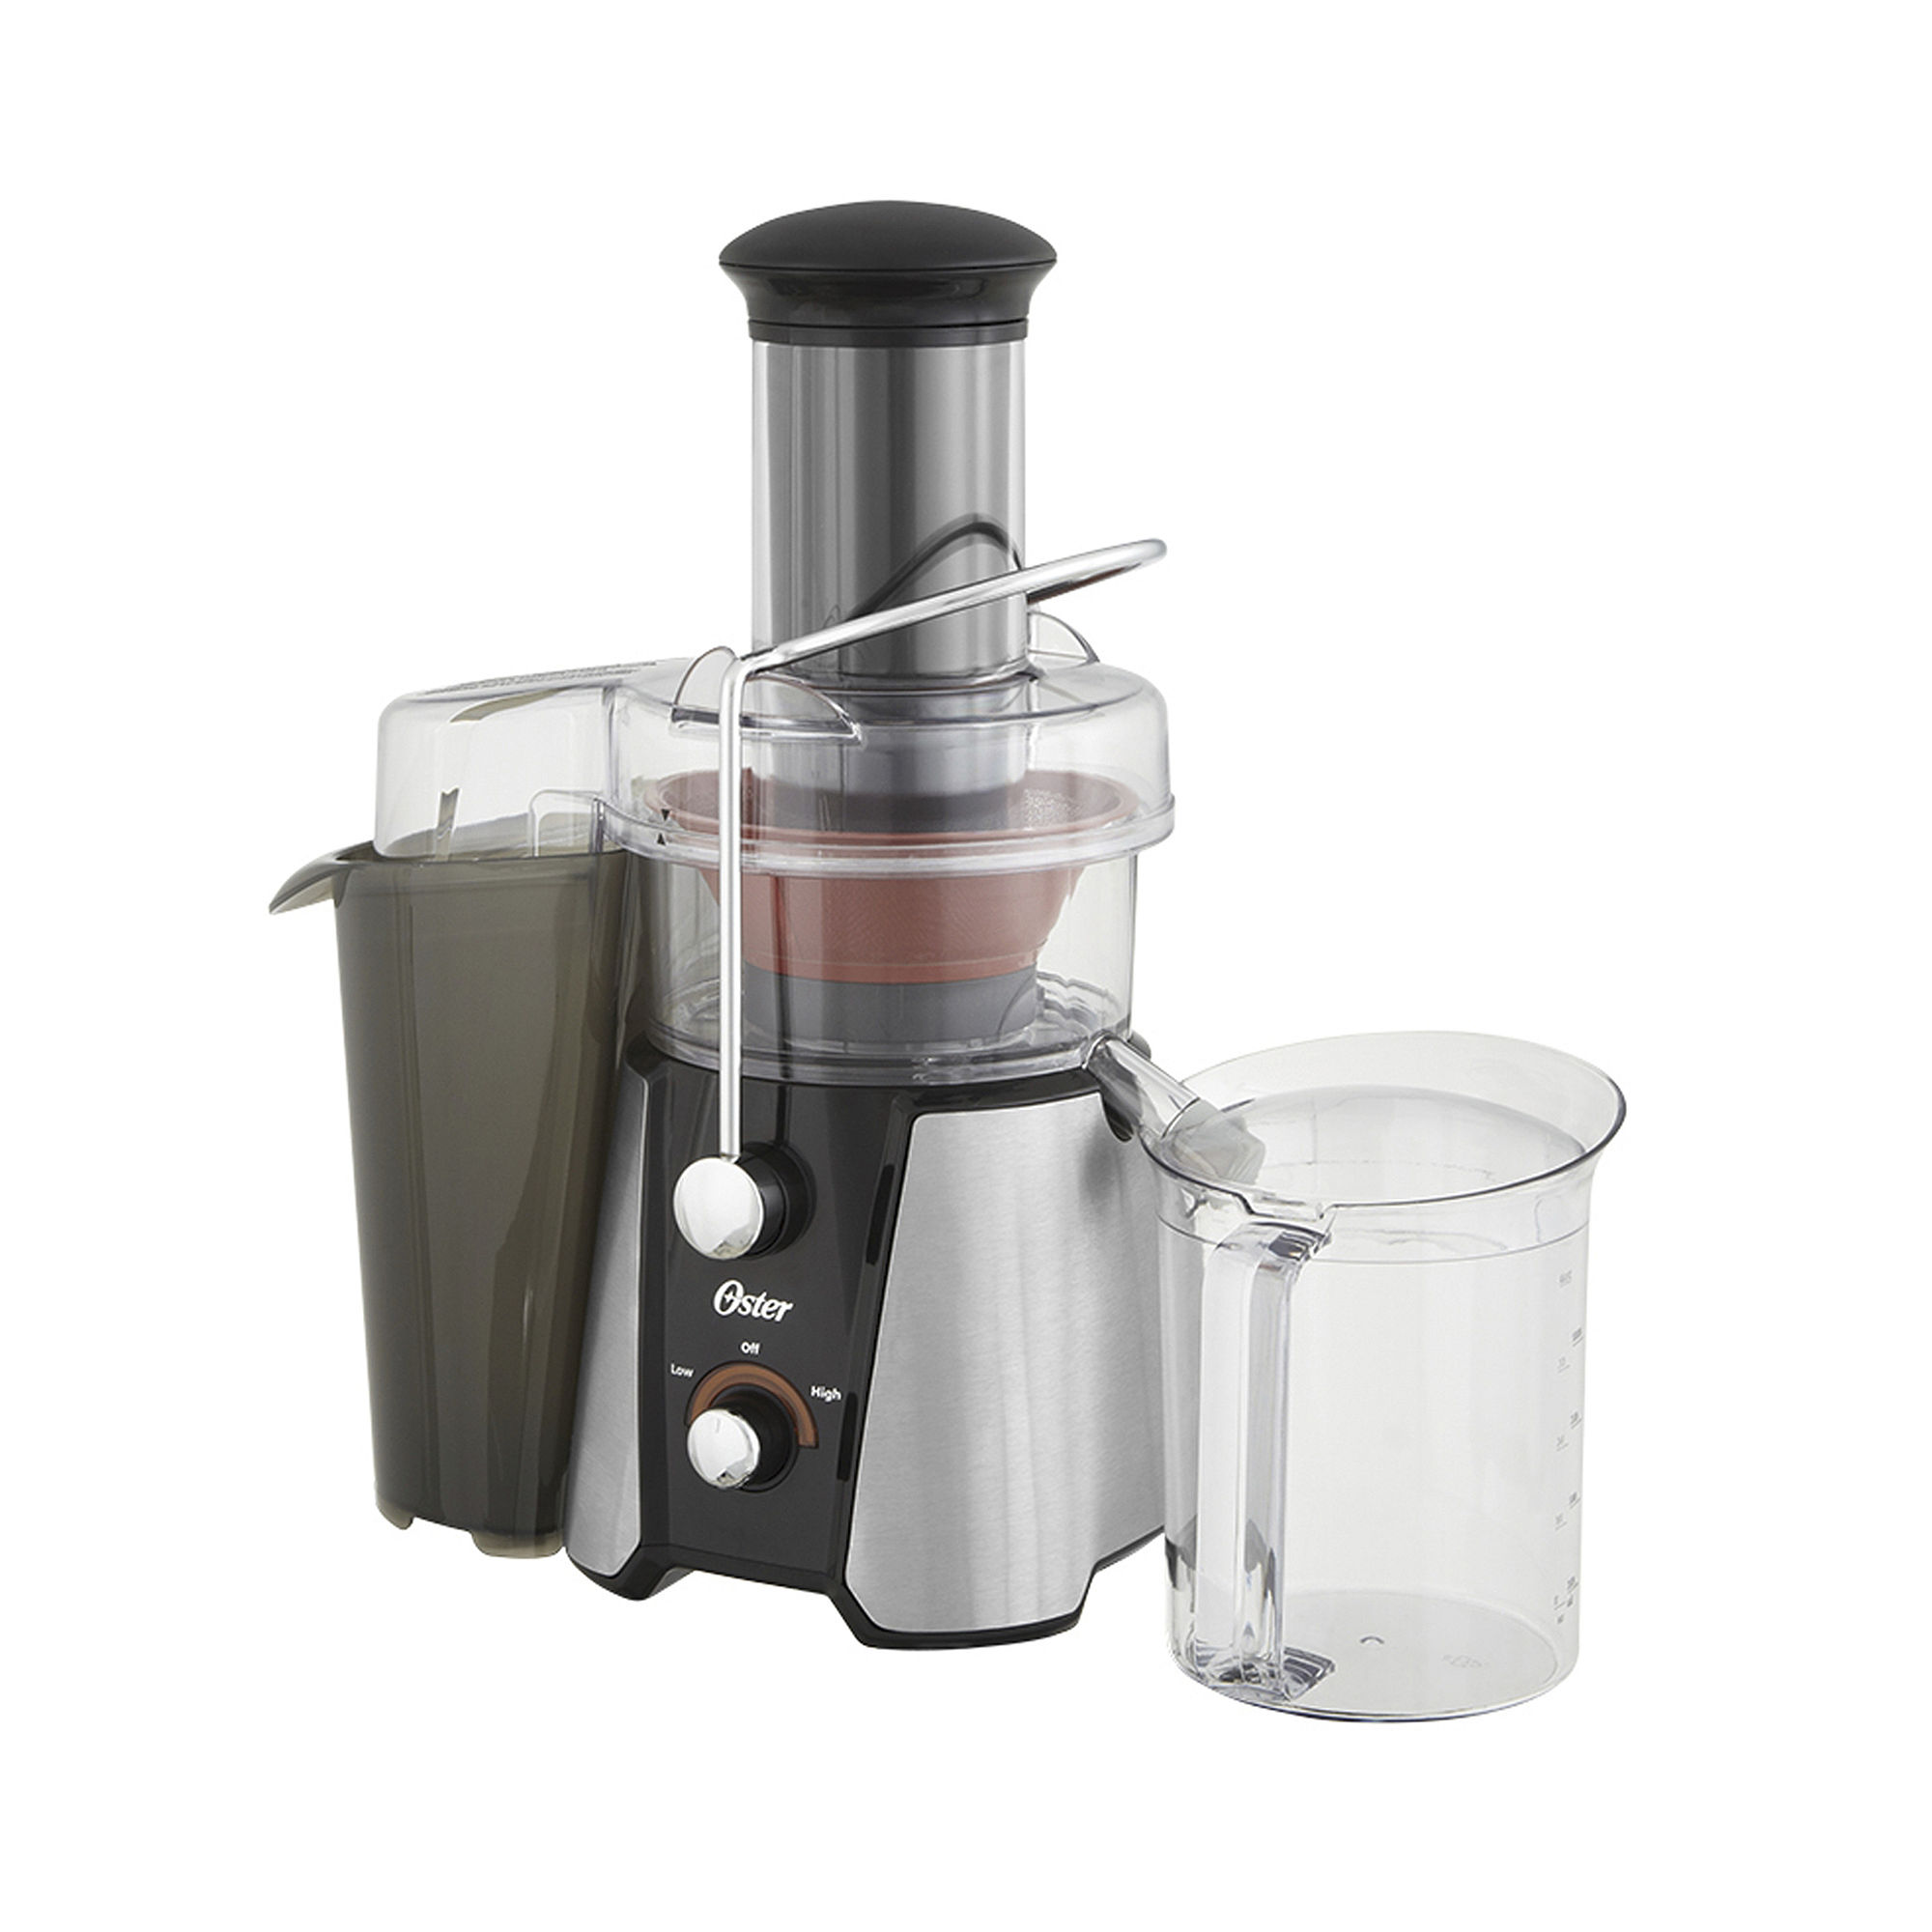 "Oster JksSimple"" 900-Watt Easy Juice Extractor"